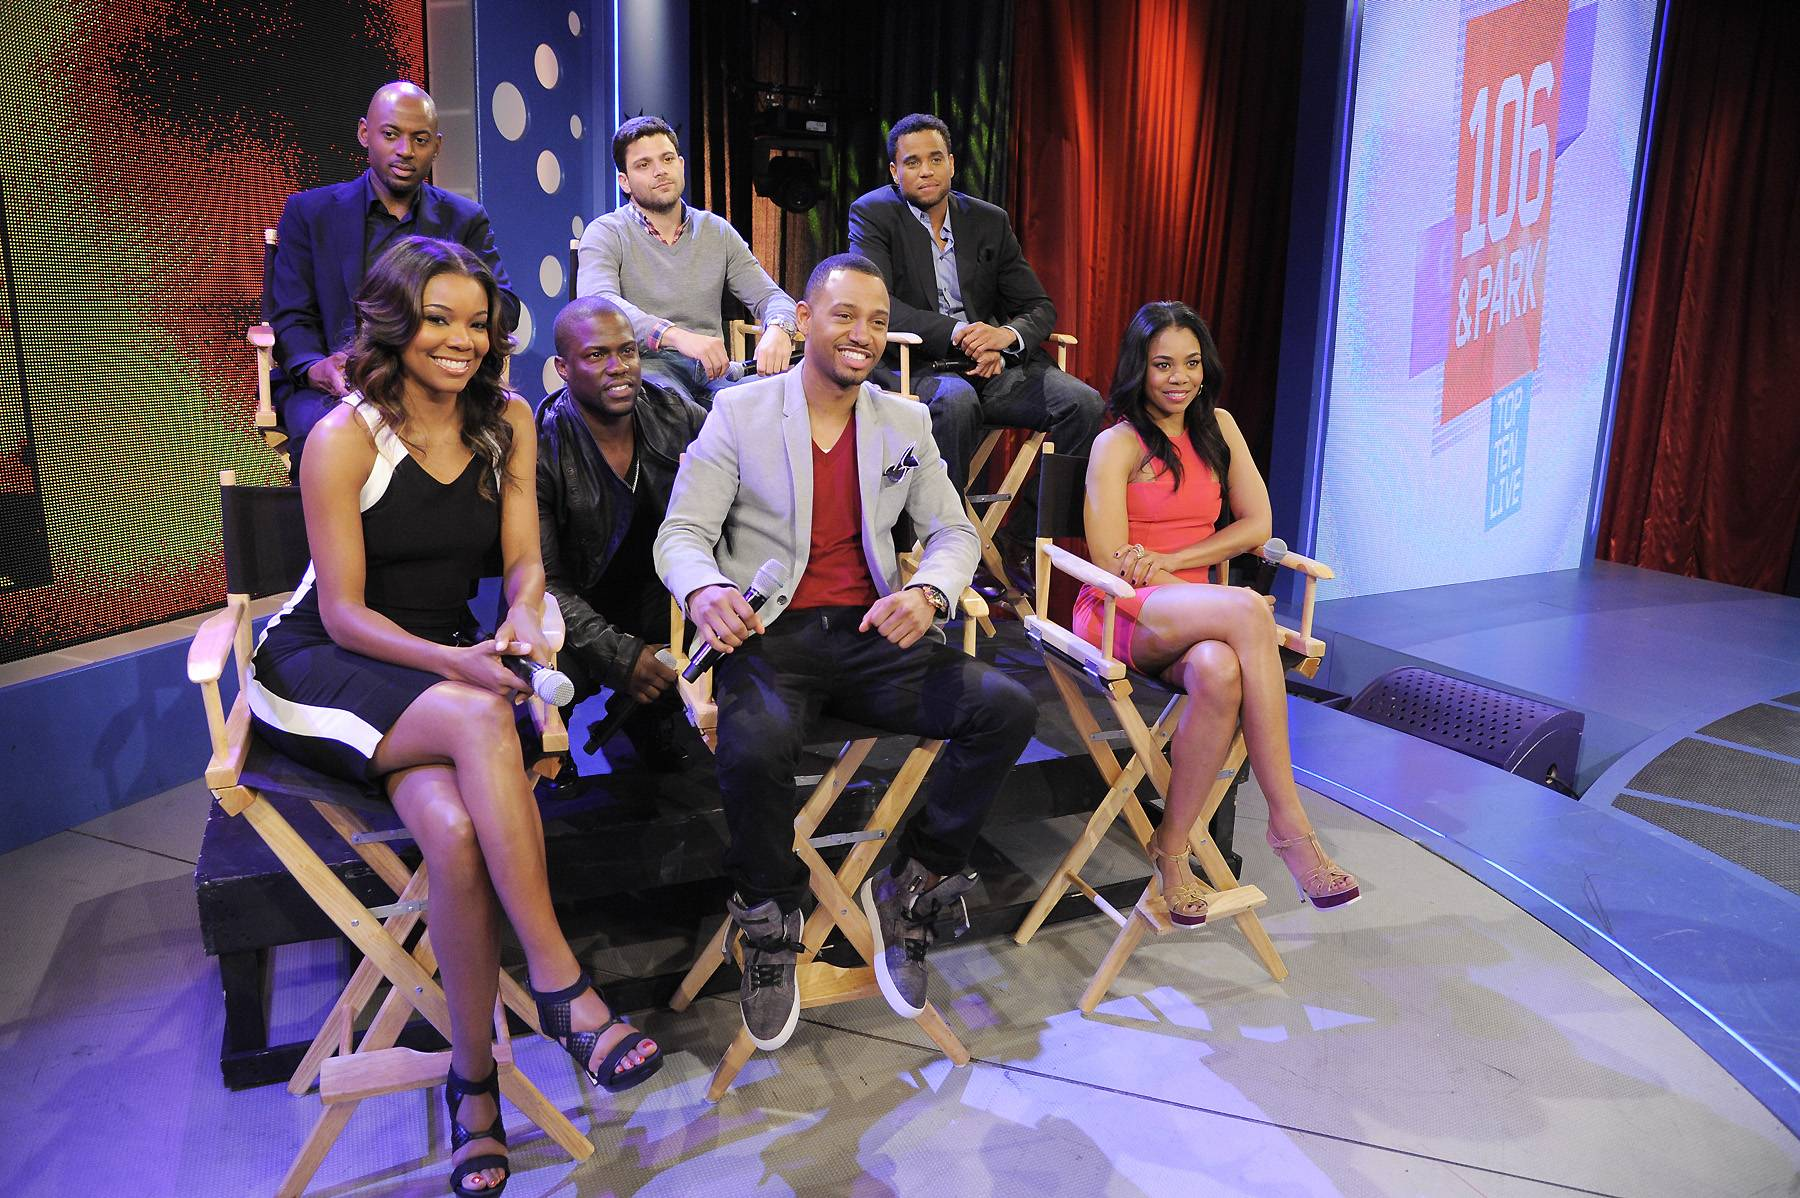 """The Cast of Think Like A Man - Gabrielle Union, Kevin Hart, Terrence J, Regina Hall, Romany Malco, Jerry Ferrara and Michael Ealy of """"Think Like a Man"""" at 106 & Park, April 5, 2012. (photo: John Ricard / BET)"""